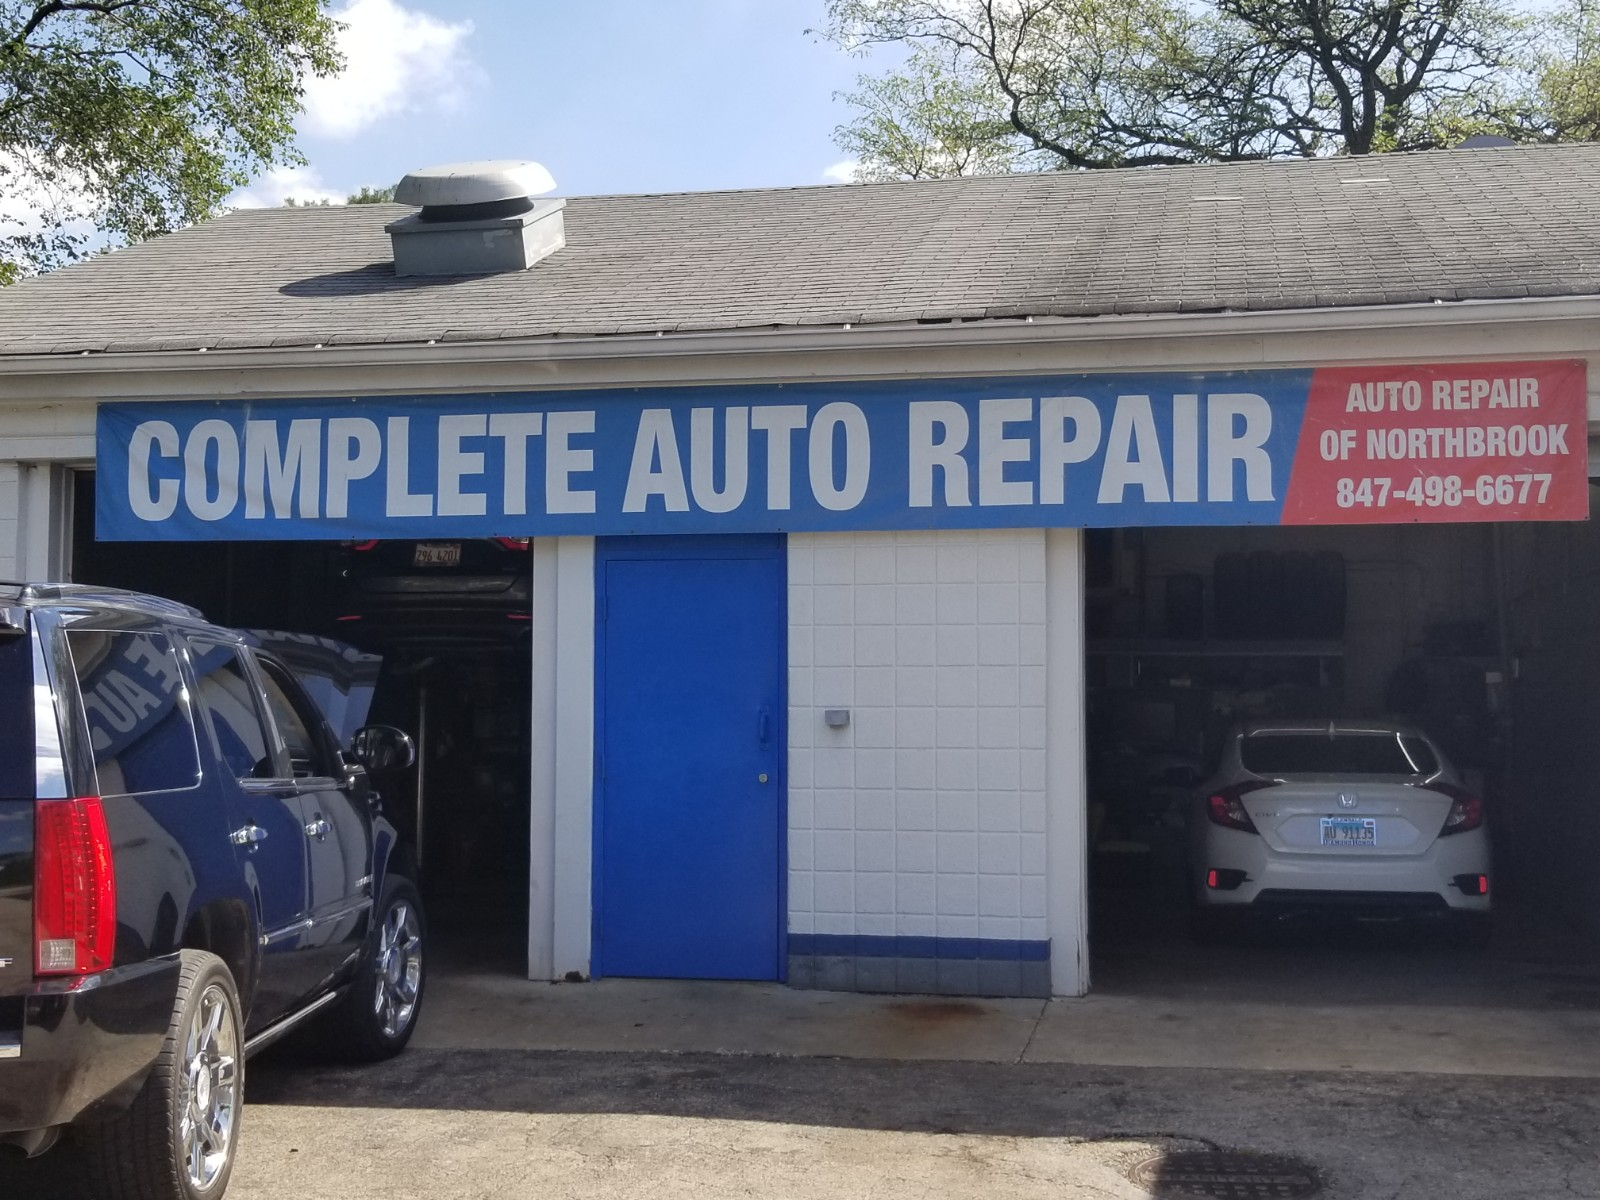 Auto Repair of Northbrook image 3